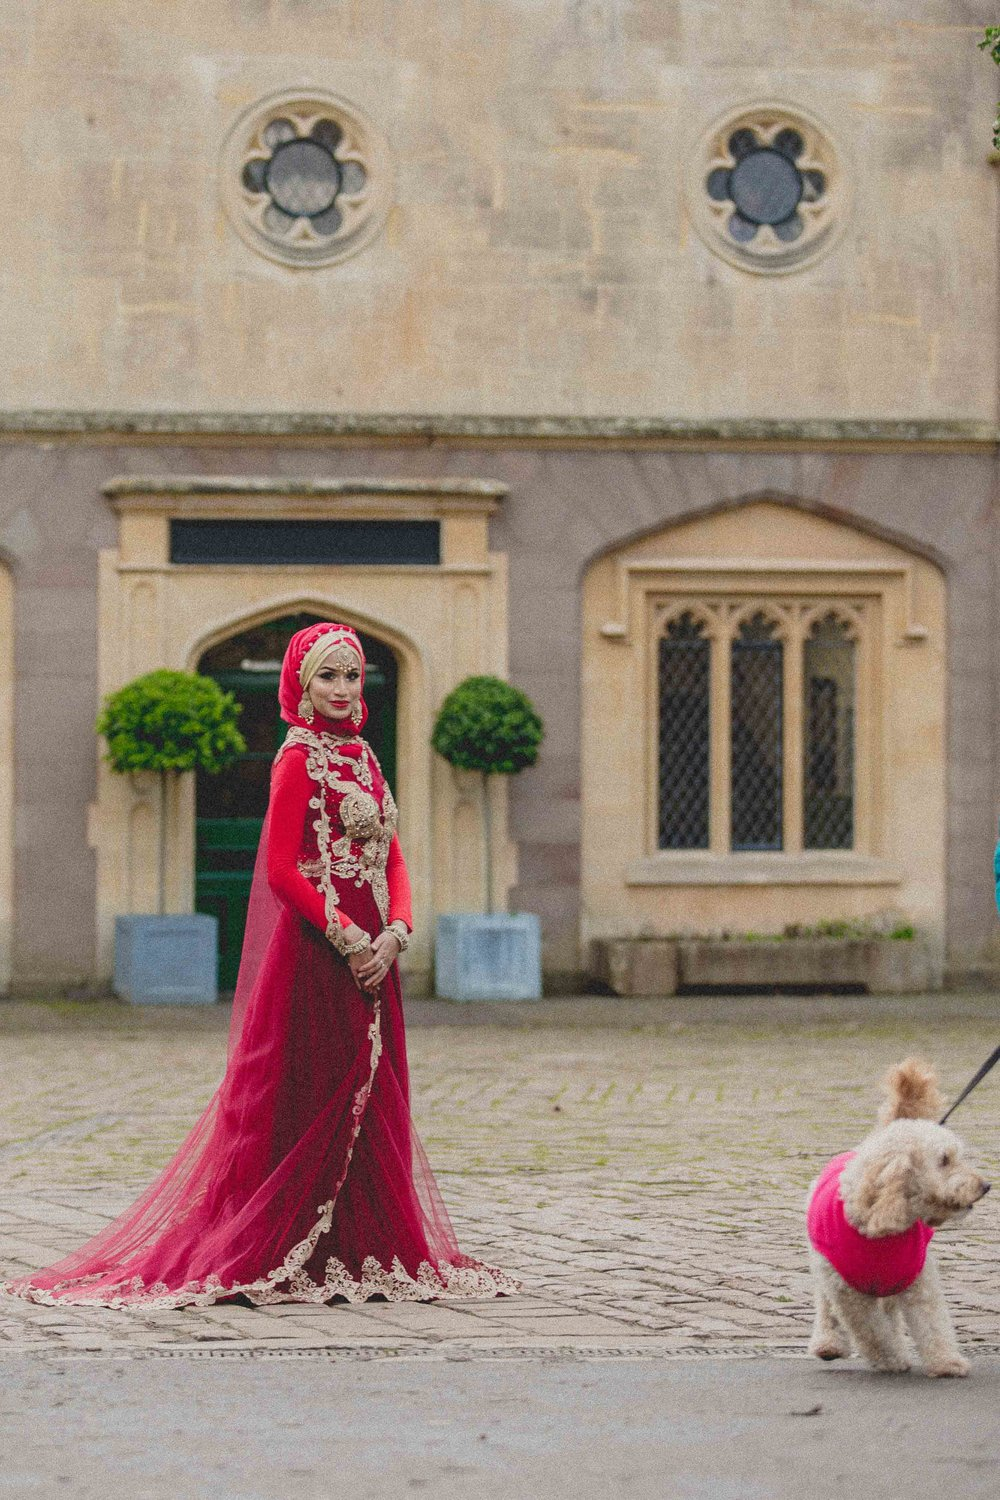 ashton-court-bristol-asian-wedding-modest-street-aisha-rahman-fashion-photography-london-bristol-natalia-smith-photography-13.jpg